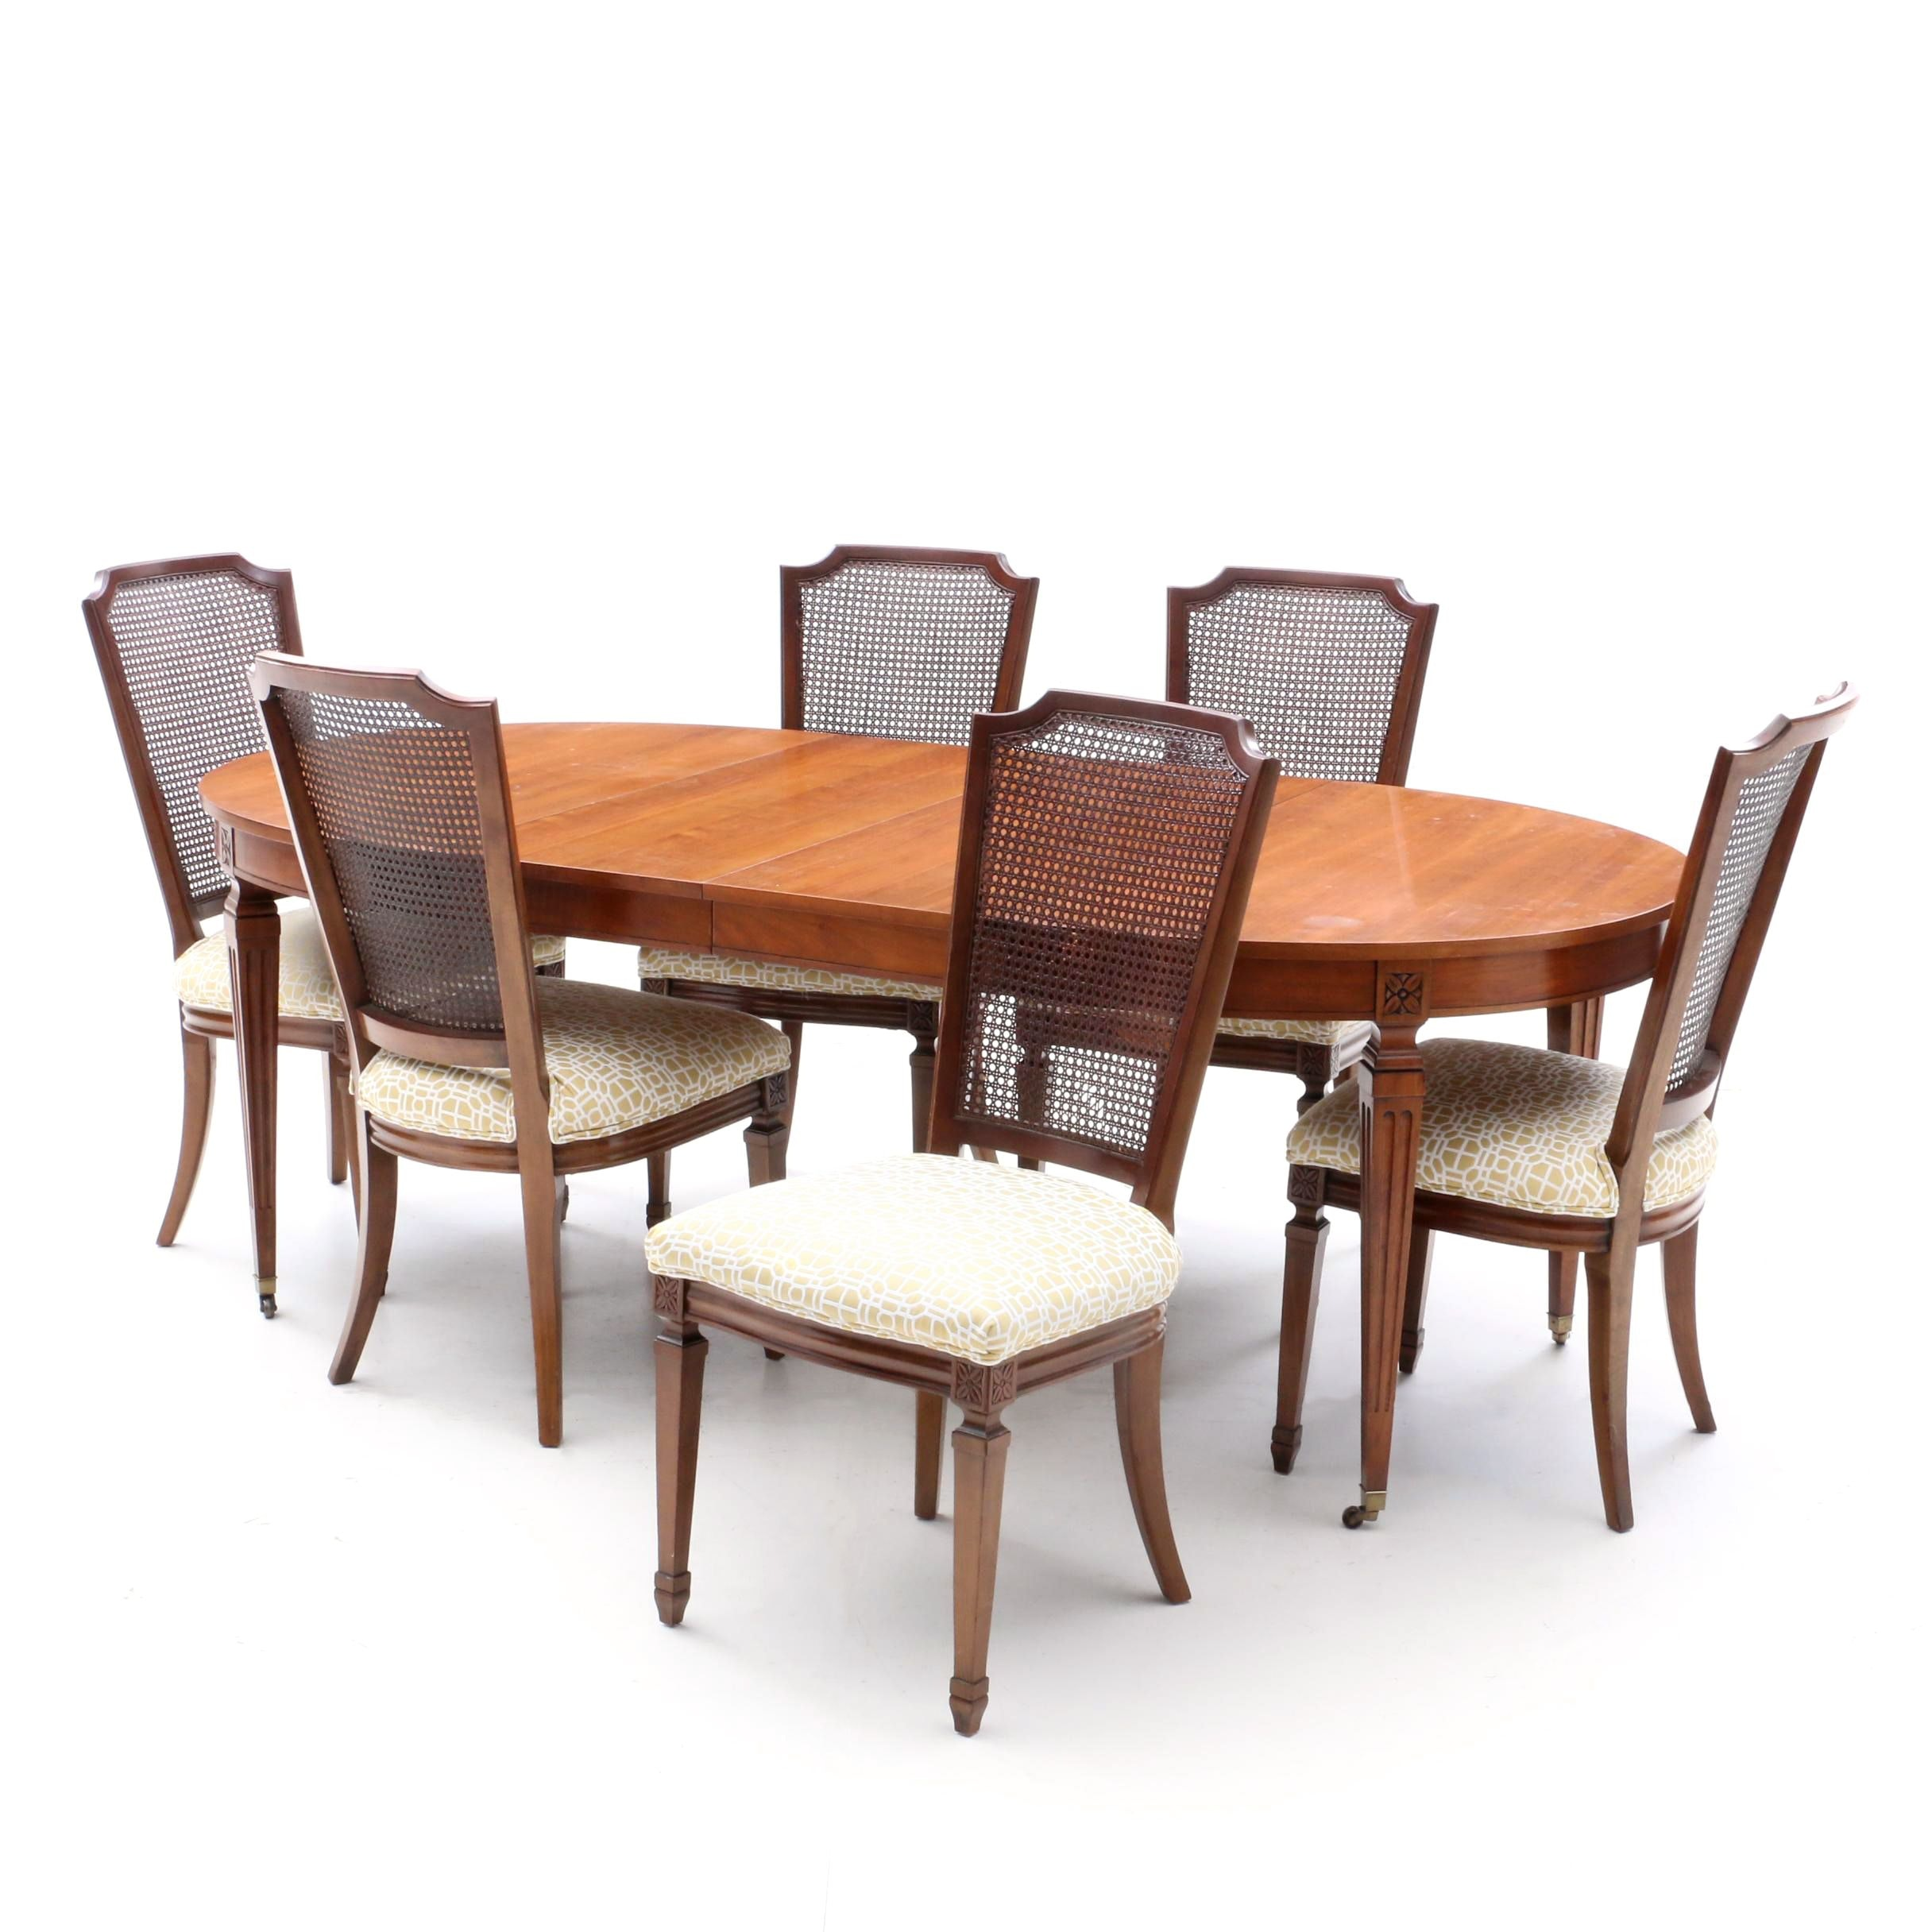 French Provincial Style Dining Table and Side Chairs, Late 20th Century